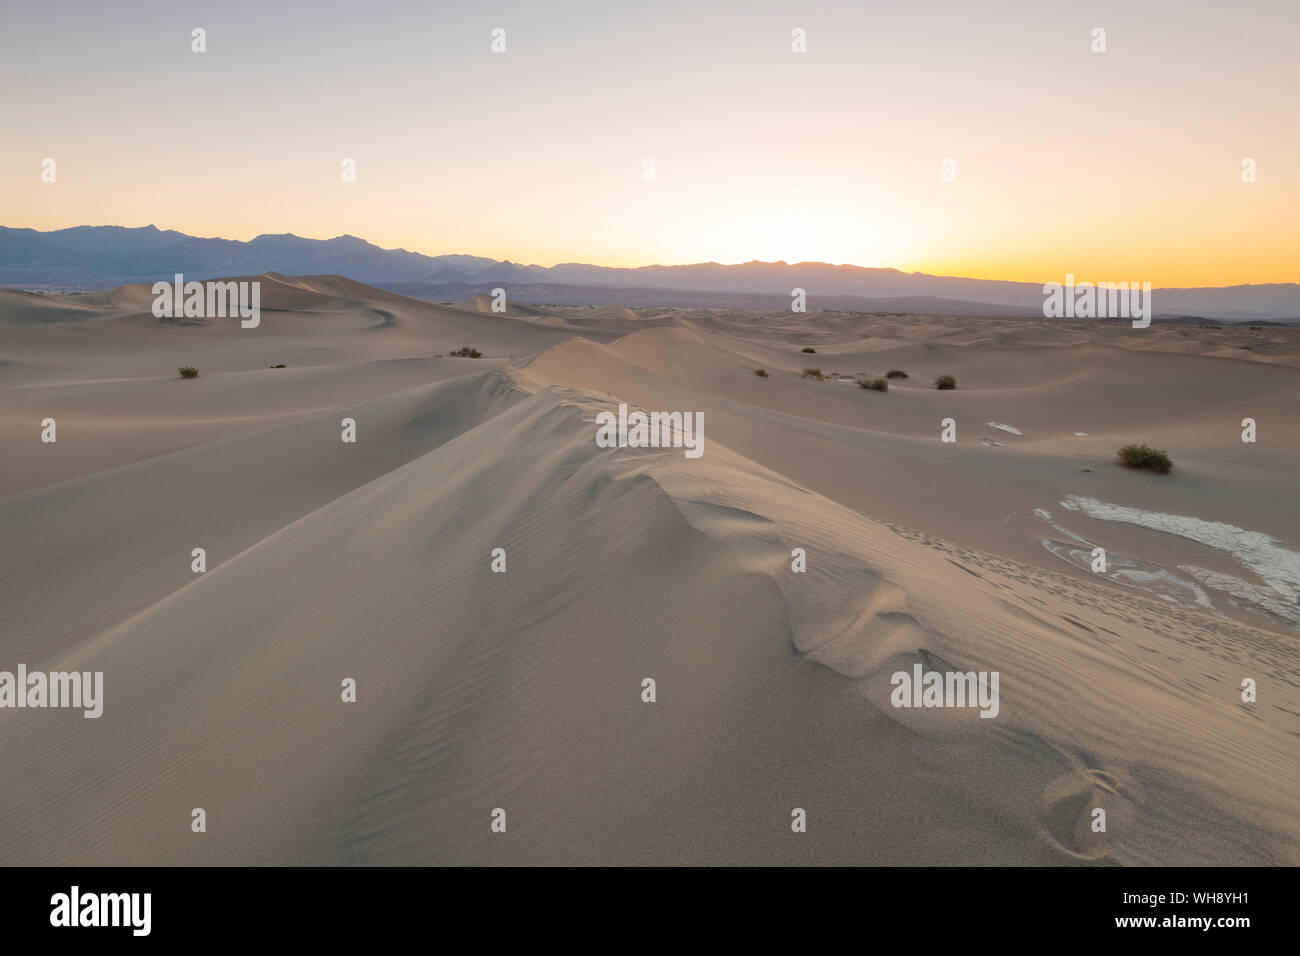 Mesquite flat sand dunes in Death Valley National Park, California, United States of America, North America Stock Photo